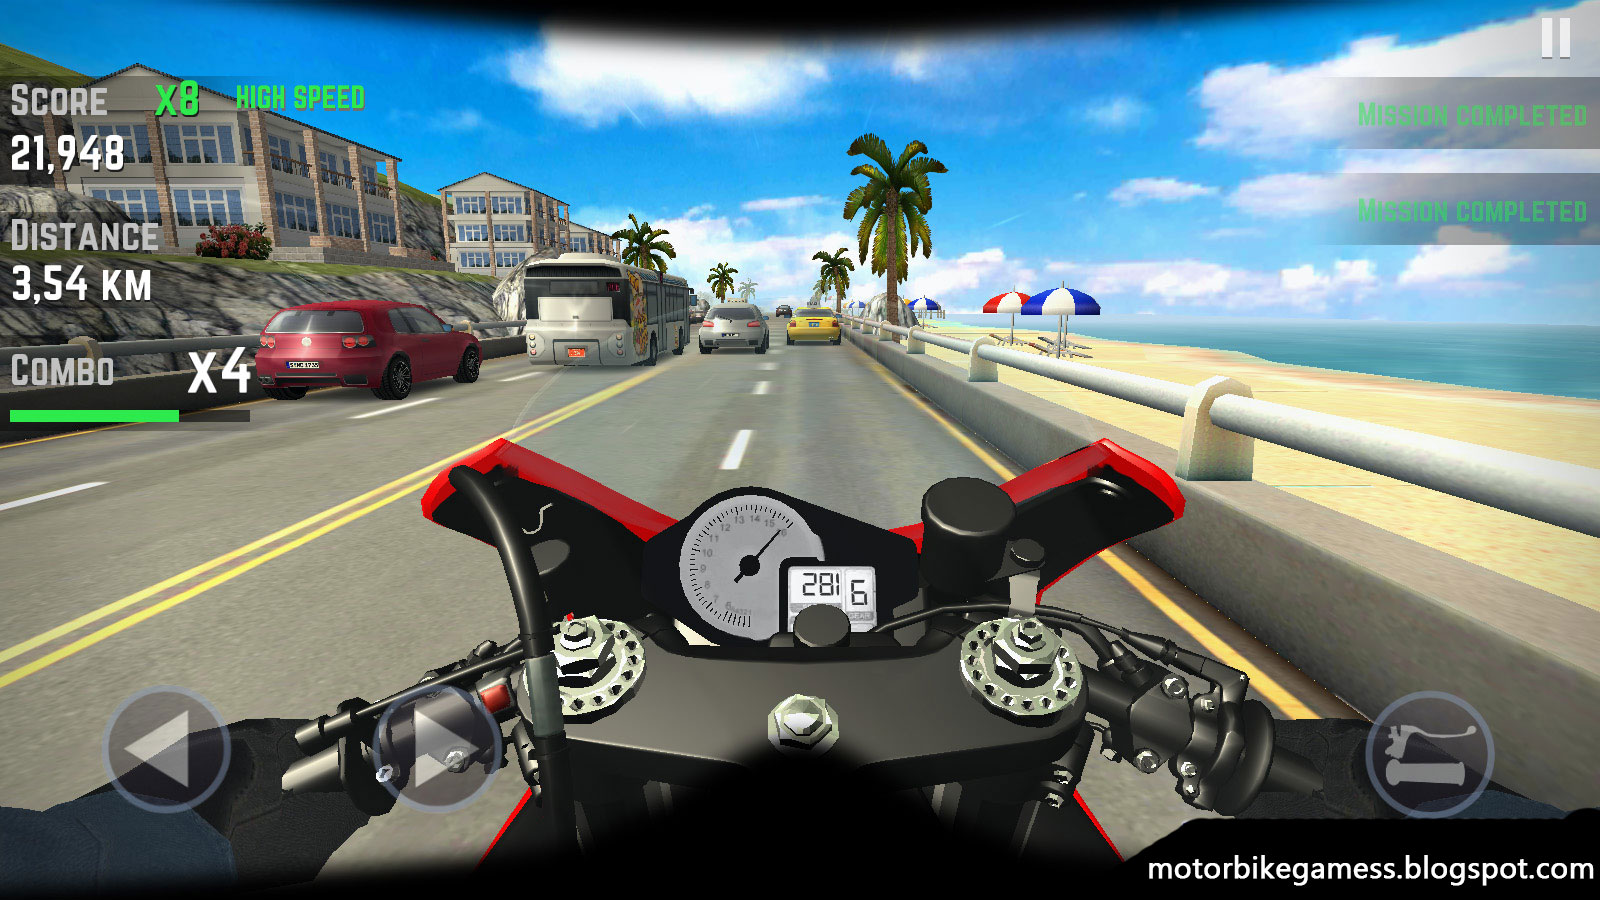 rider traffic highway games motorbike apk multiplayer motorcycle moto motorbikes android 3d racing mode mod pc v1 lifelike cockpit totally